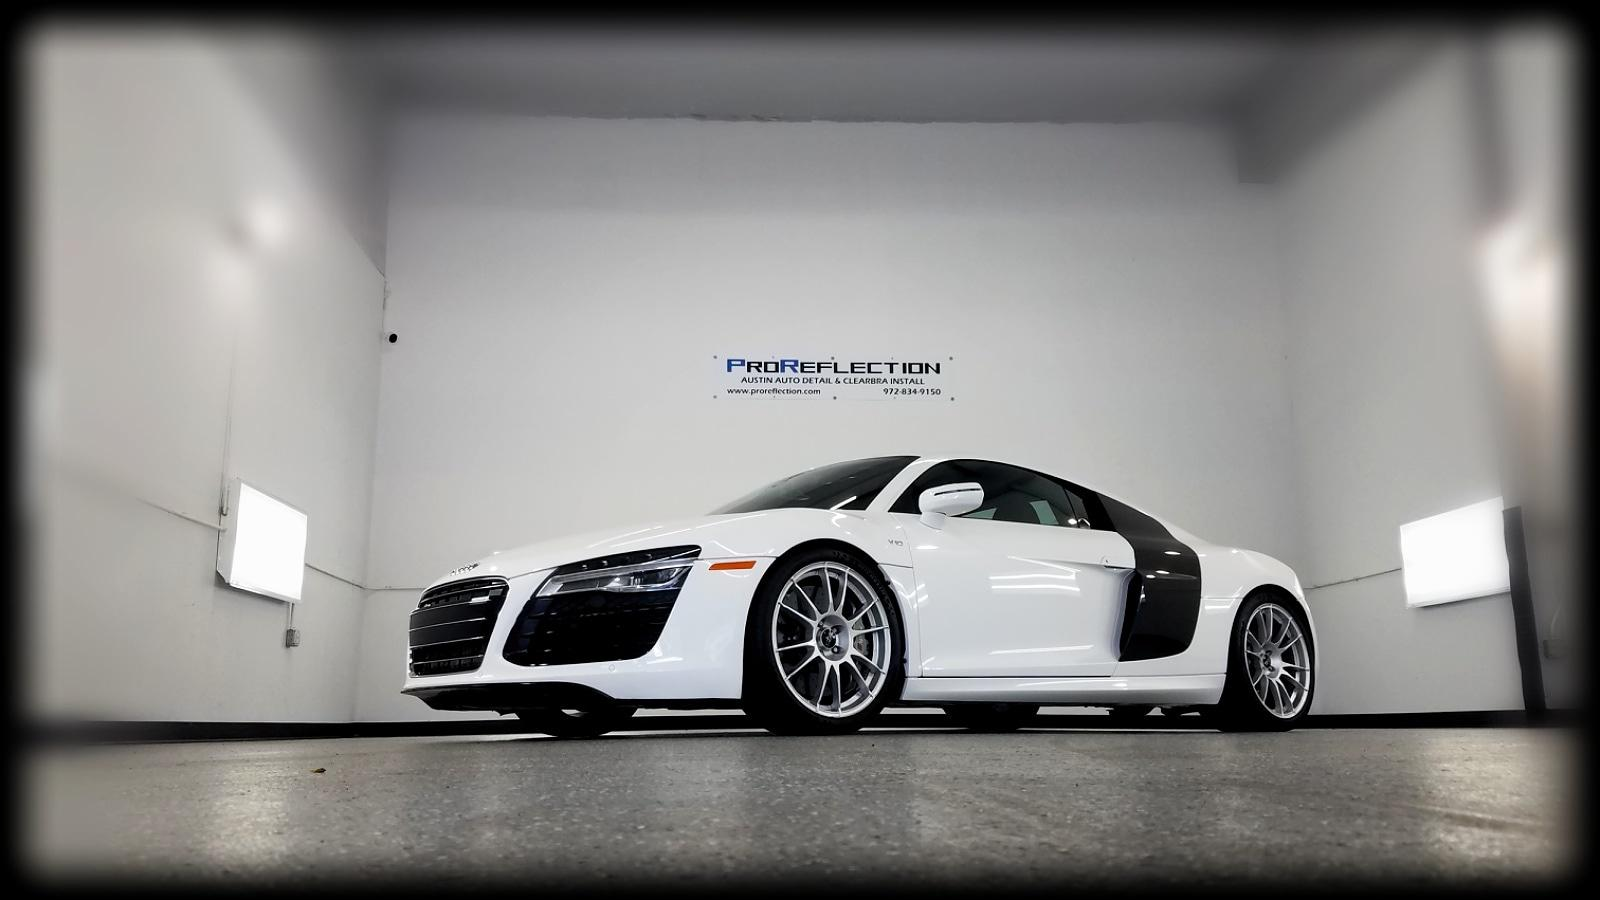 70,000 mile birthday present for my supercharged 2014 V10-proreflection-r8-1.jpg